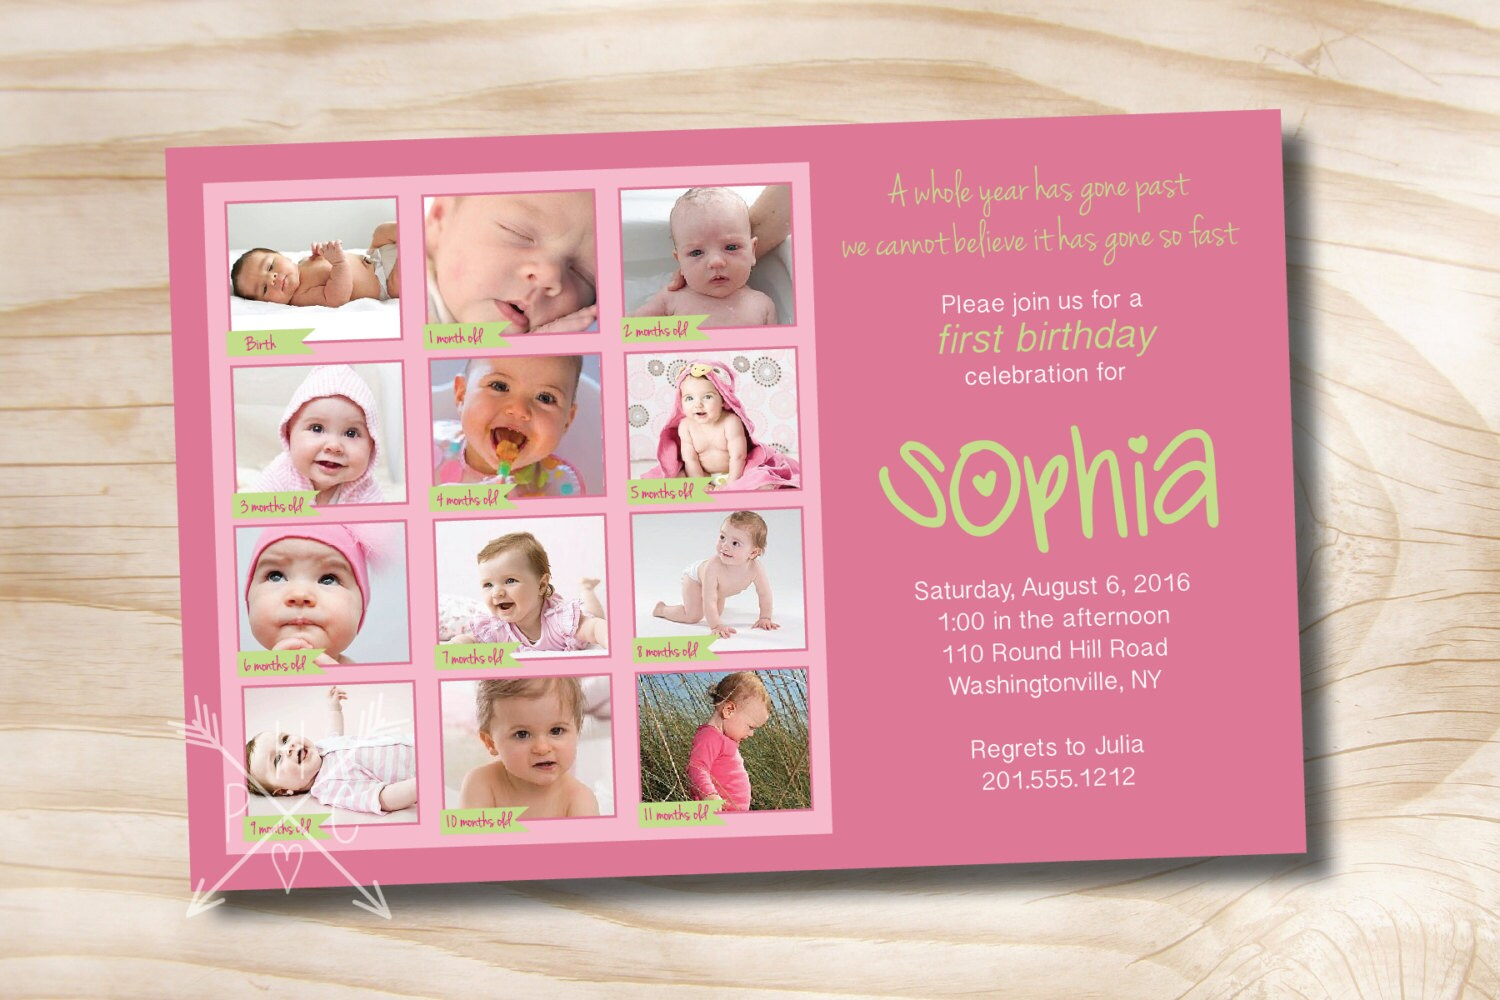 First birthday photo montage birthday party event printable zoom kristyandbryce Images